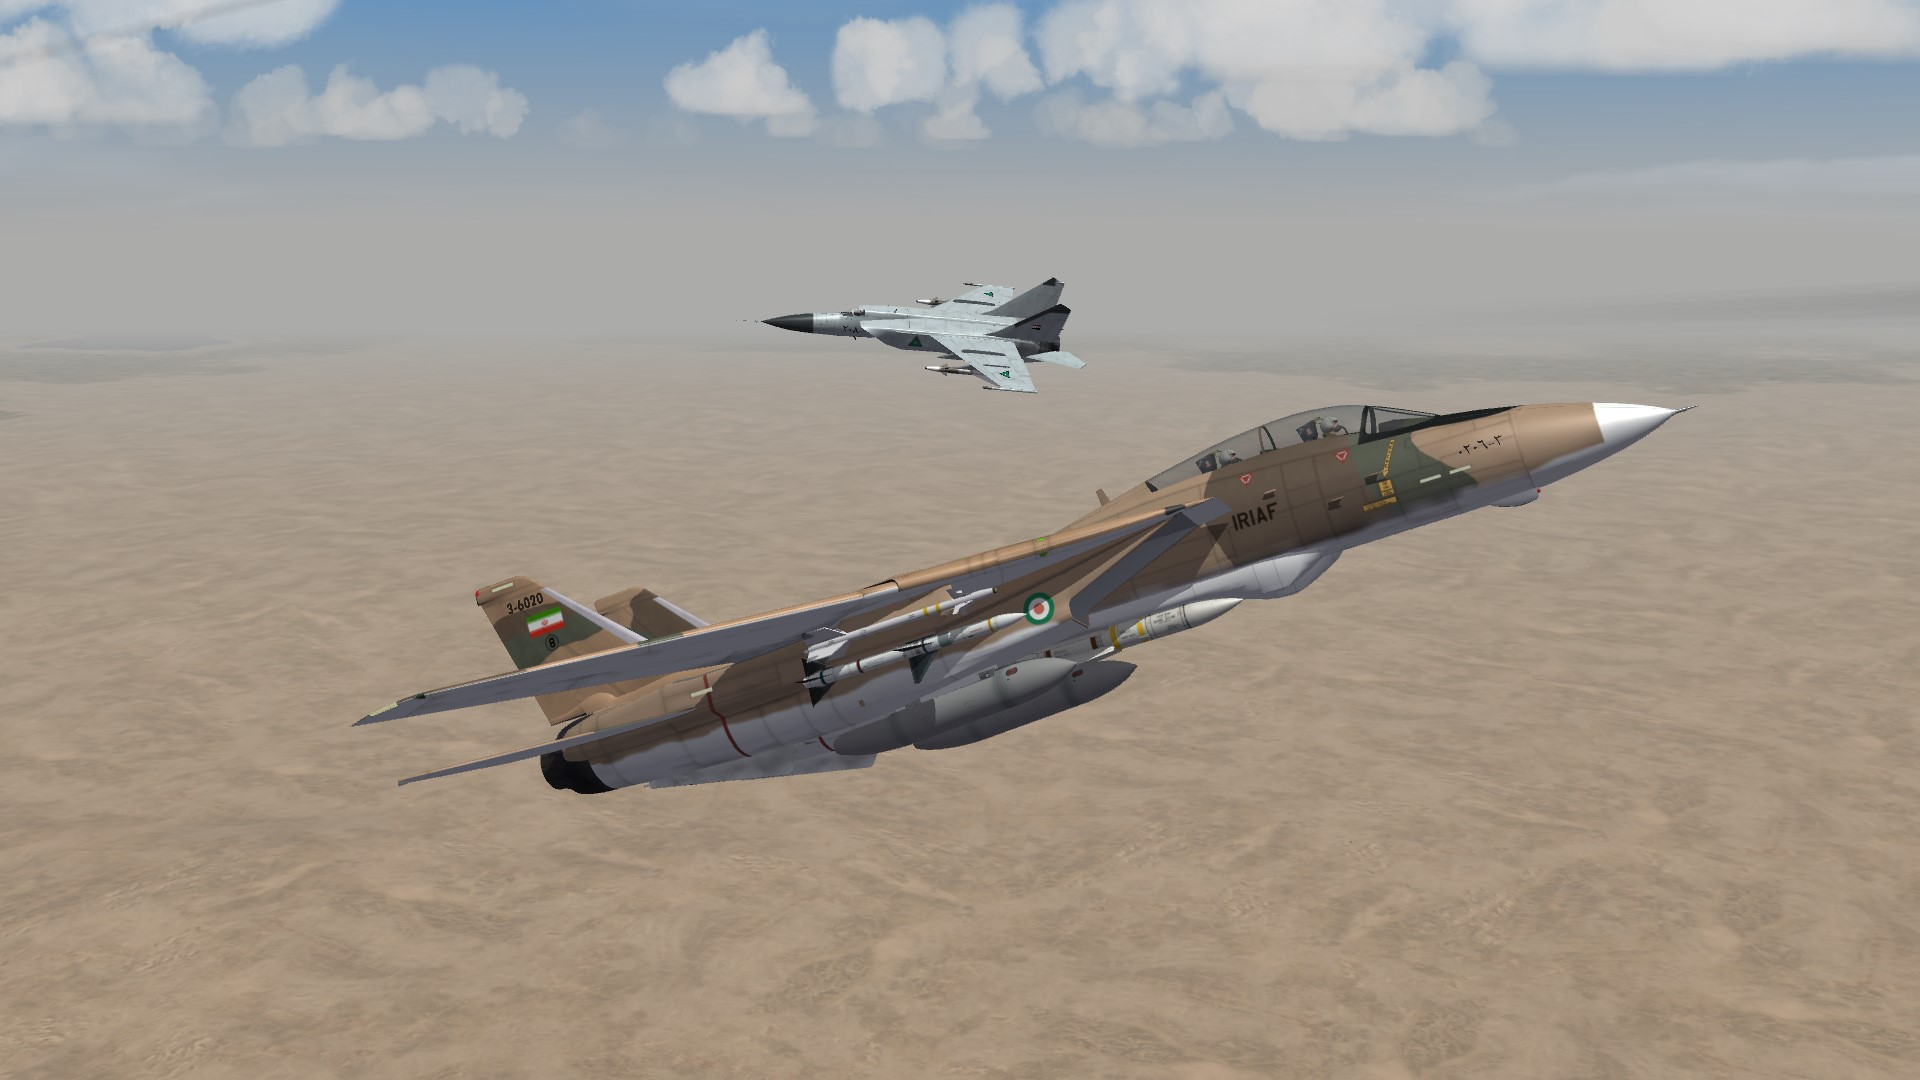 1985 Close incounter with a MIG25 Foxbat